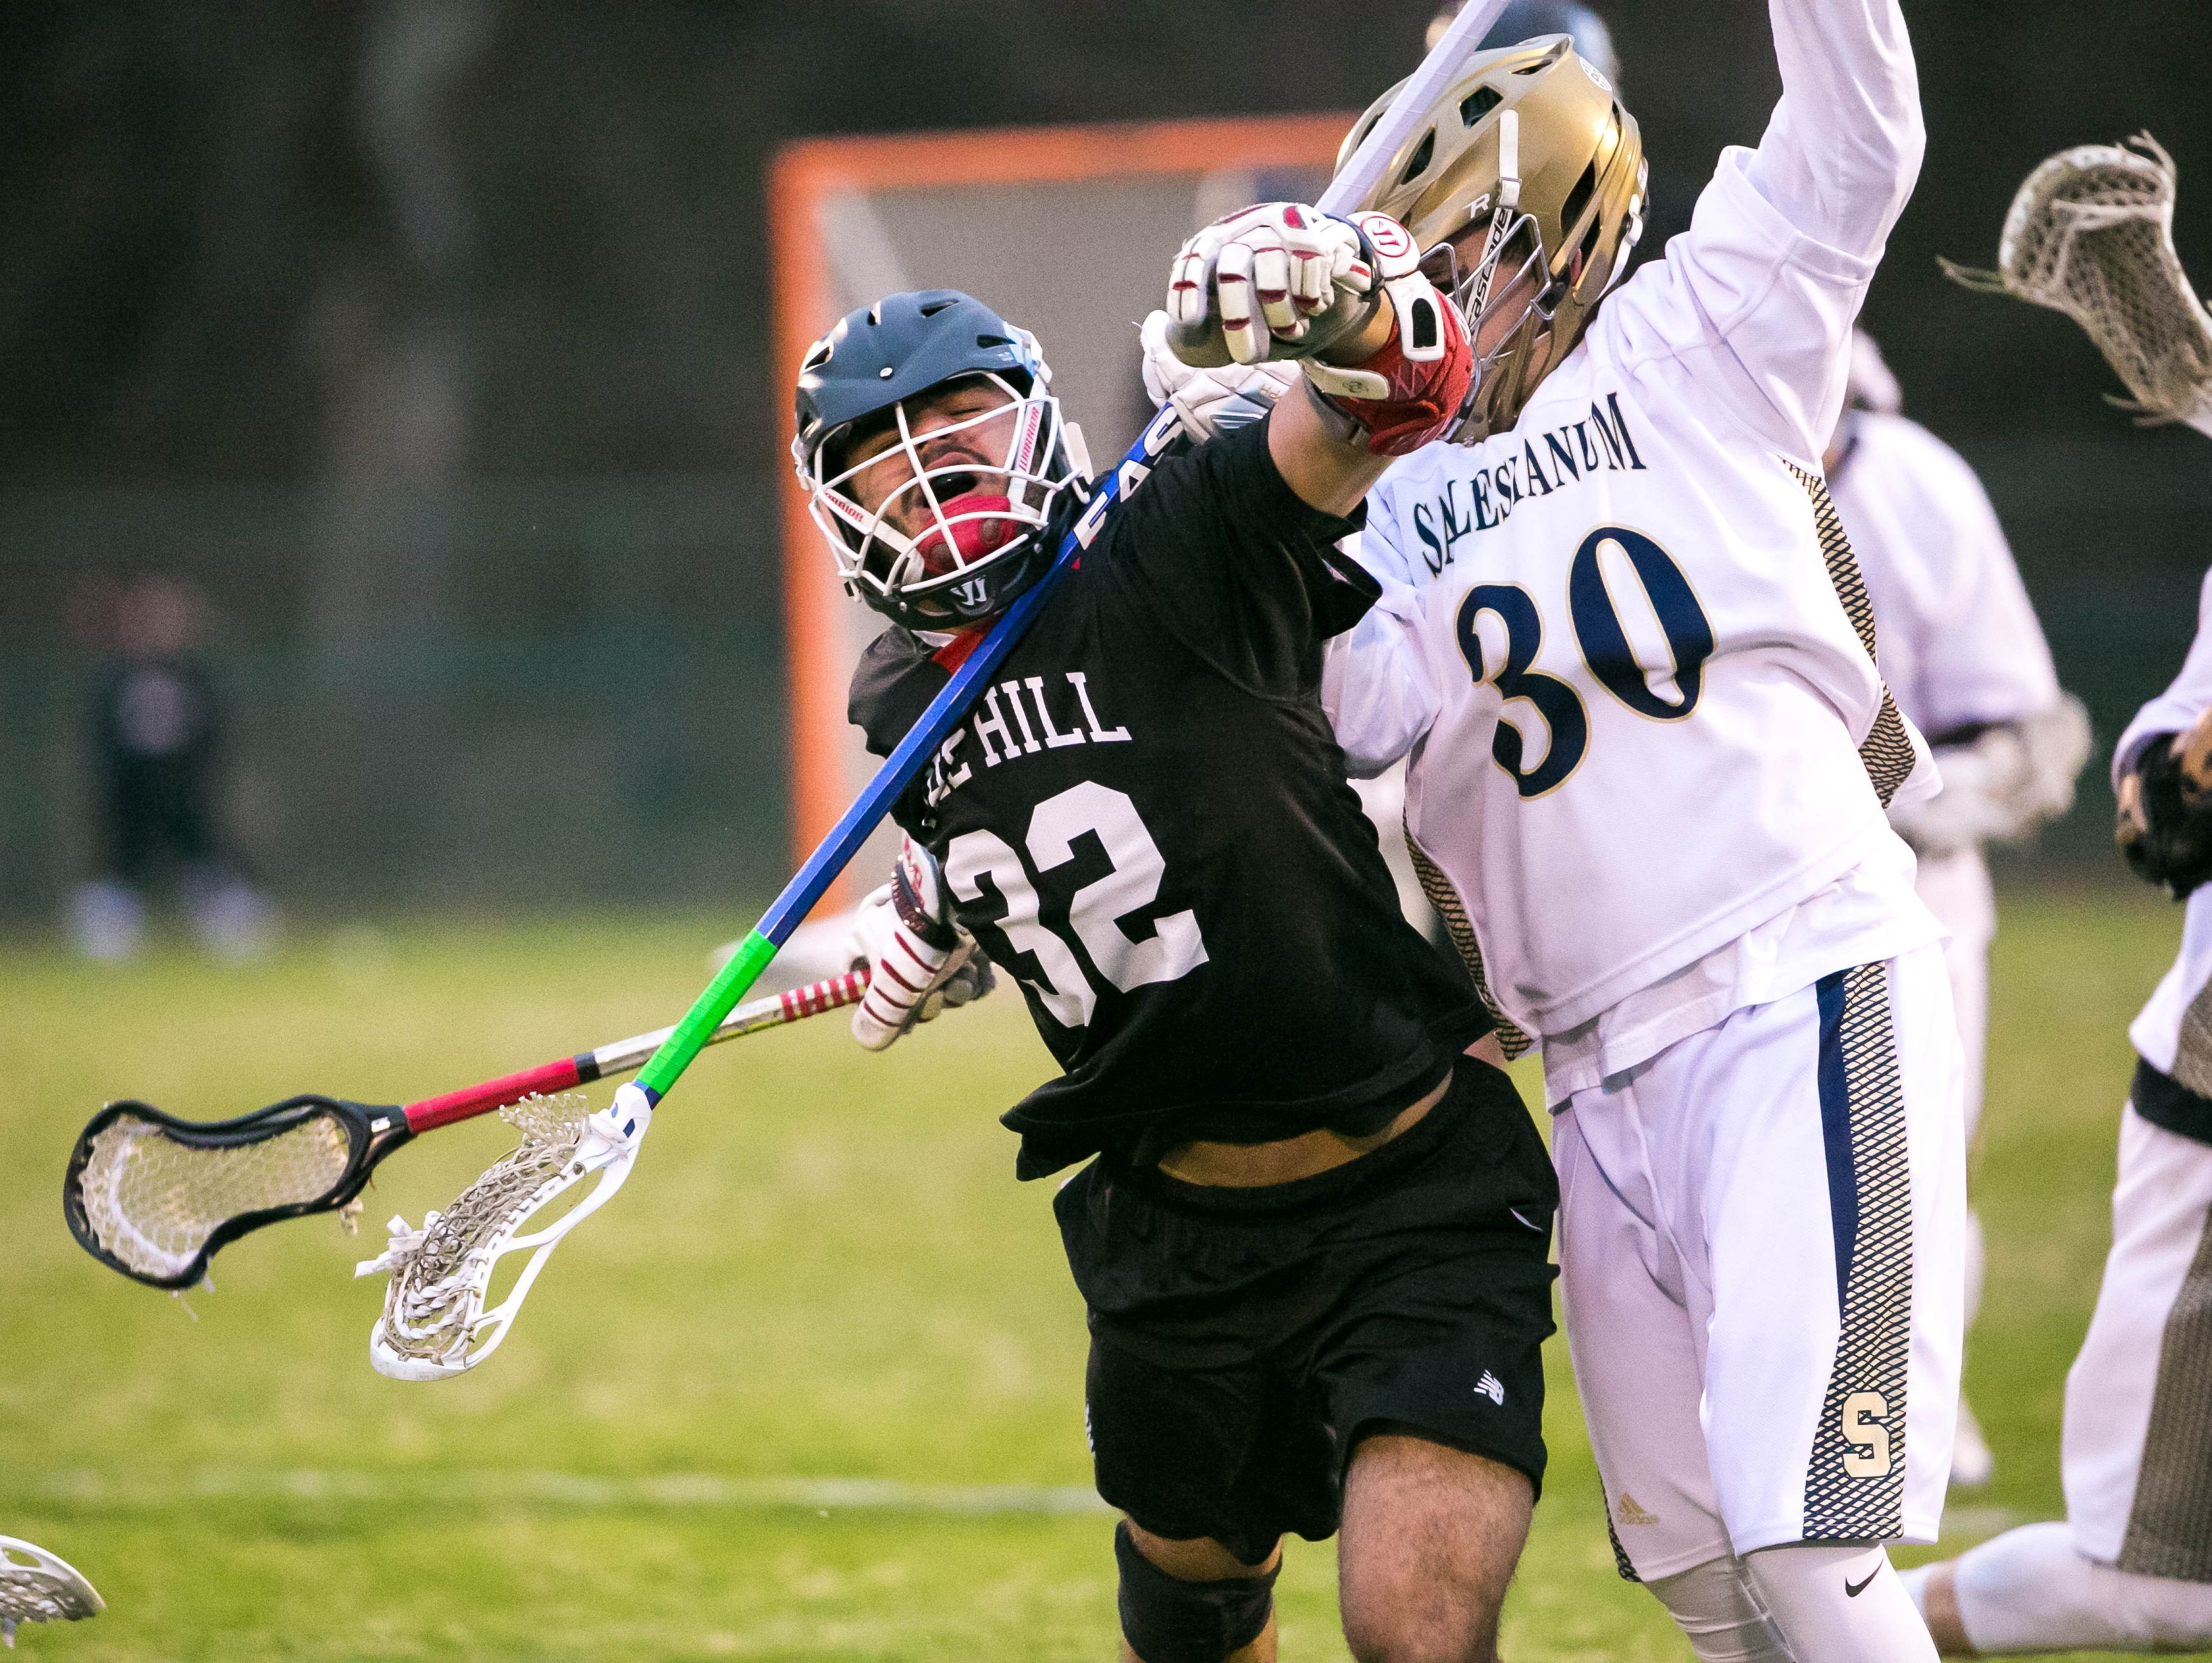 Justin Inacio of Hill Academy battles with James Blazkow of Salesianum in the first quarter at Baynard Stadium.